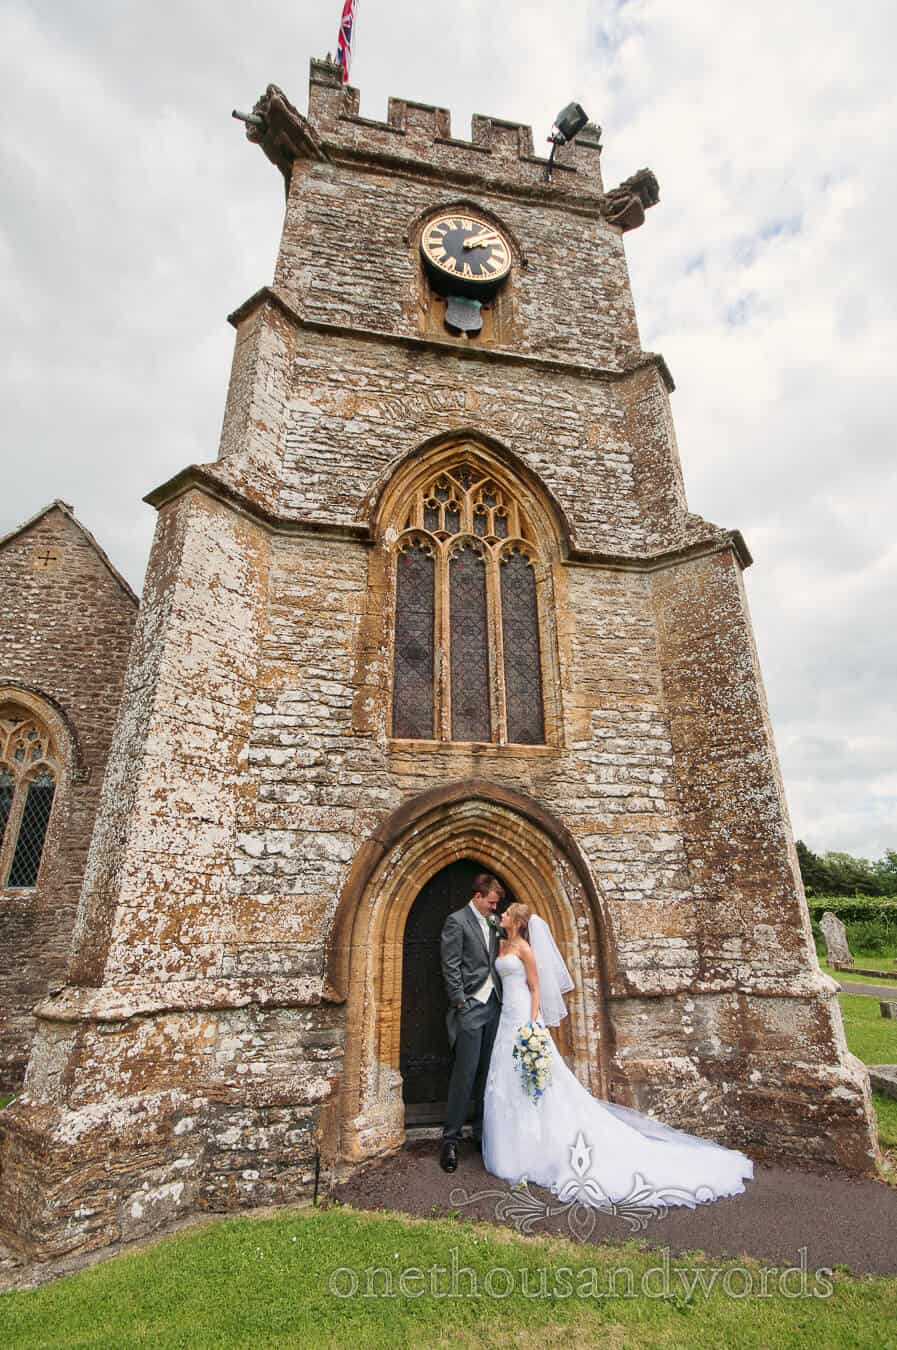 Bride and groom outside english country church wedding ceremony